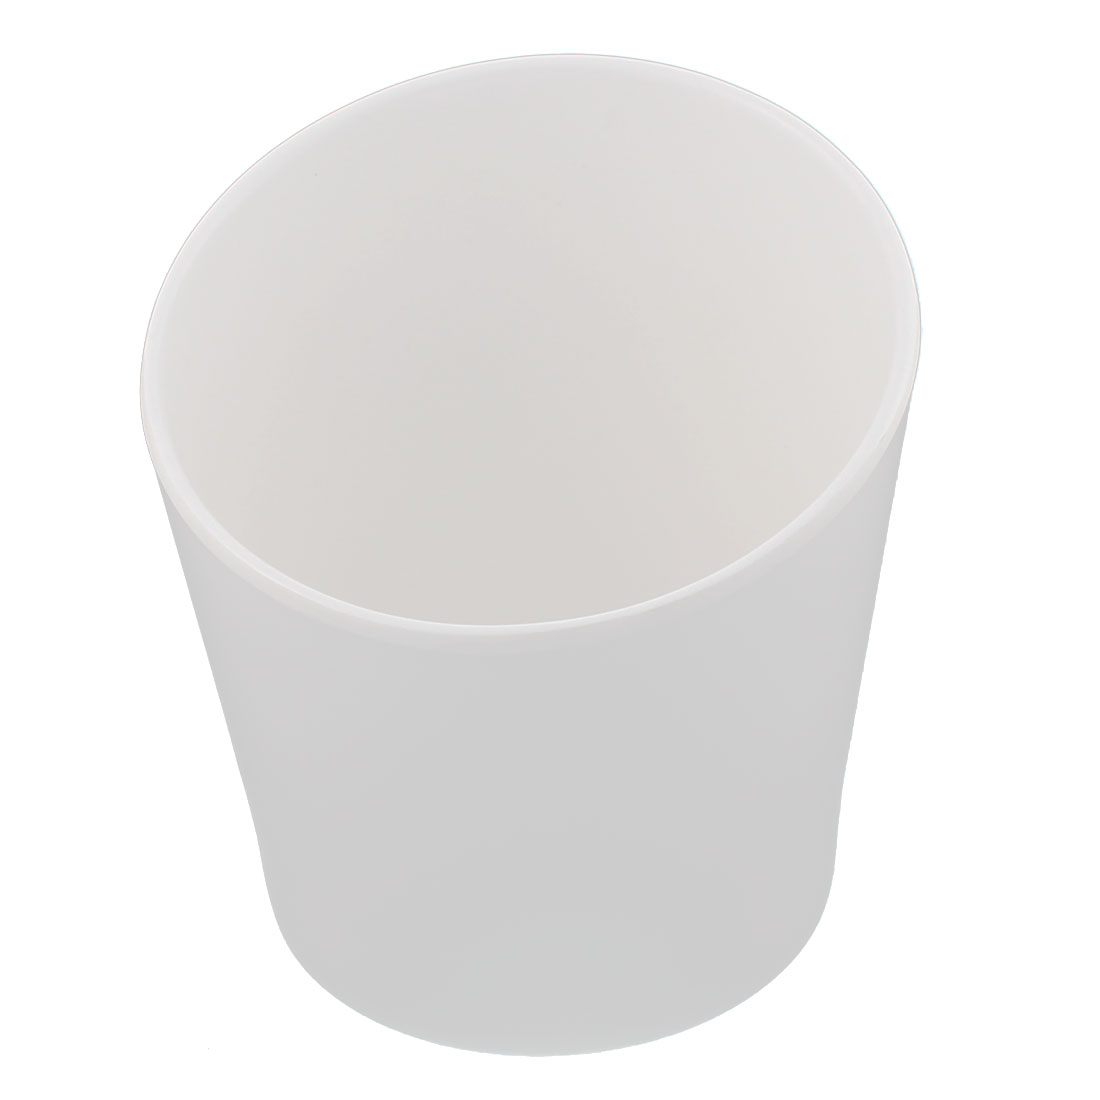 Home Restaurant Tall Slant Bowl Dessert Bowls 11 x 8cm White